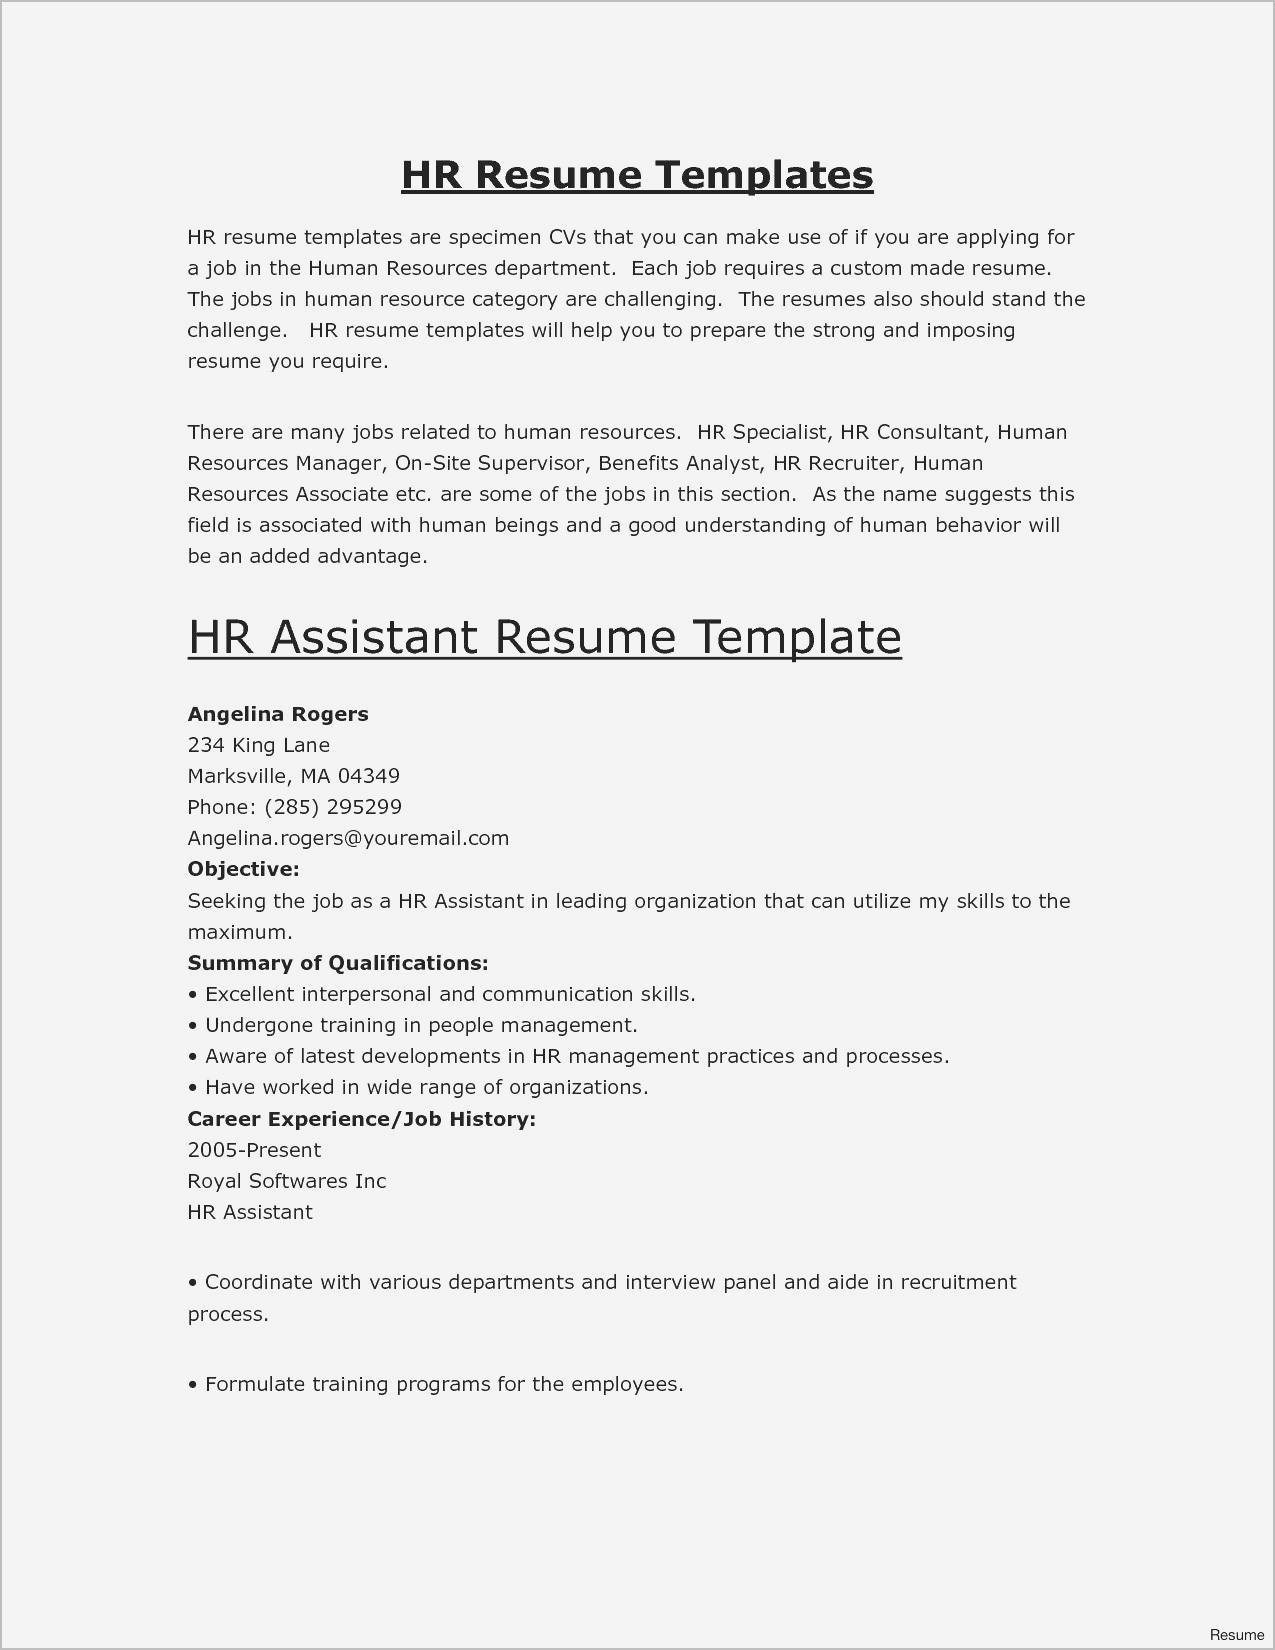 Resume Powerpoint Template - ¢Ë†Å¡ Change Template Powerpoint Change Powerpoint Template Best Ppt